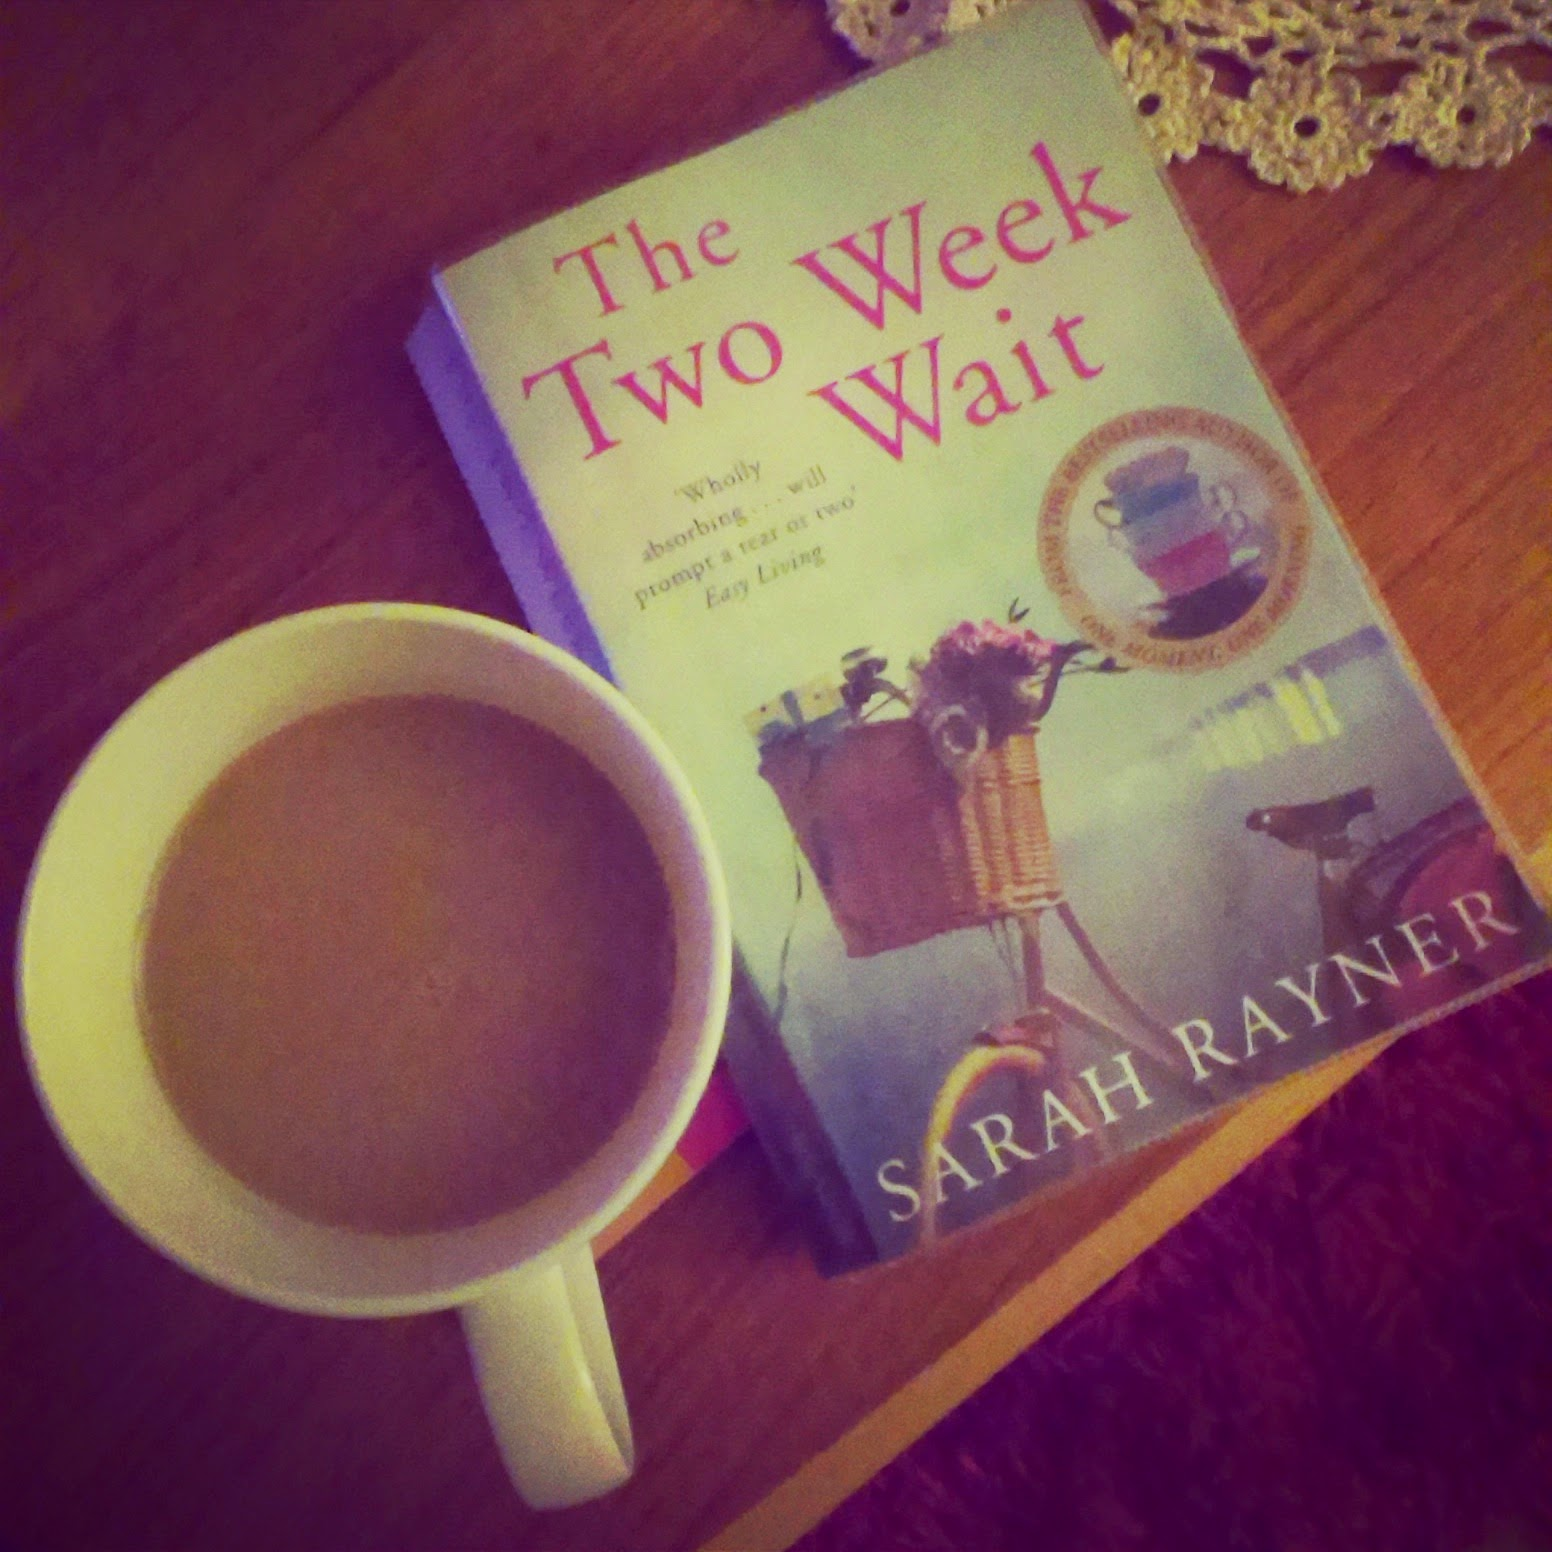 11pm - cup of tea and book before bedtime